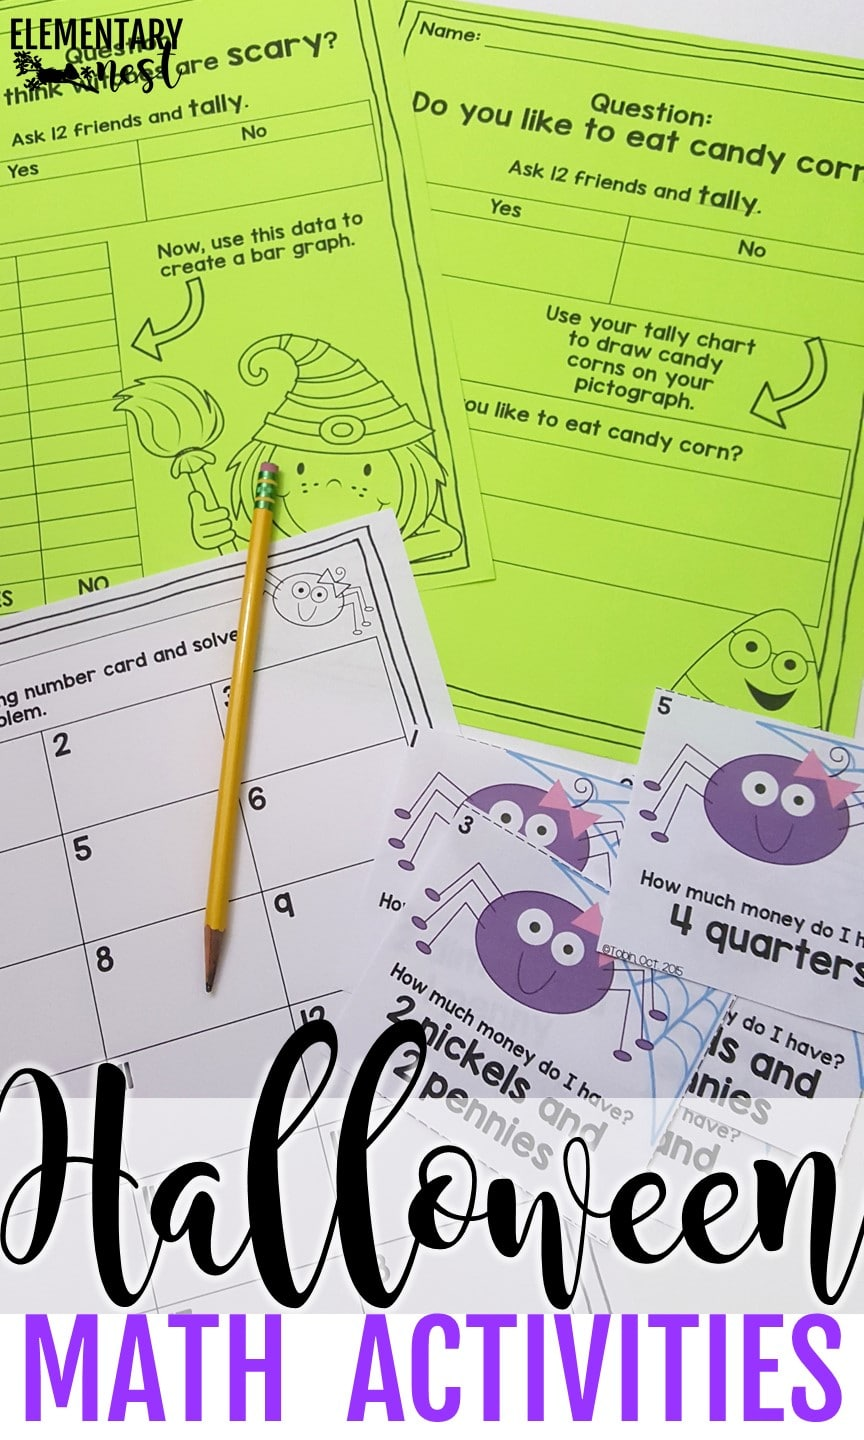 Halloween math activities for October lesson plans.